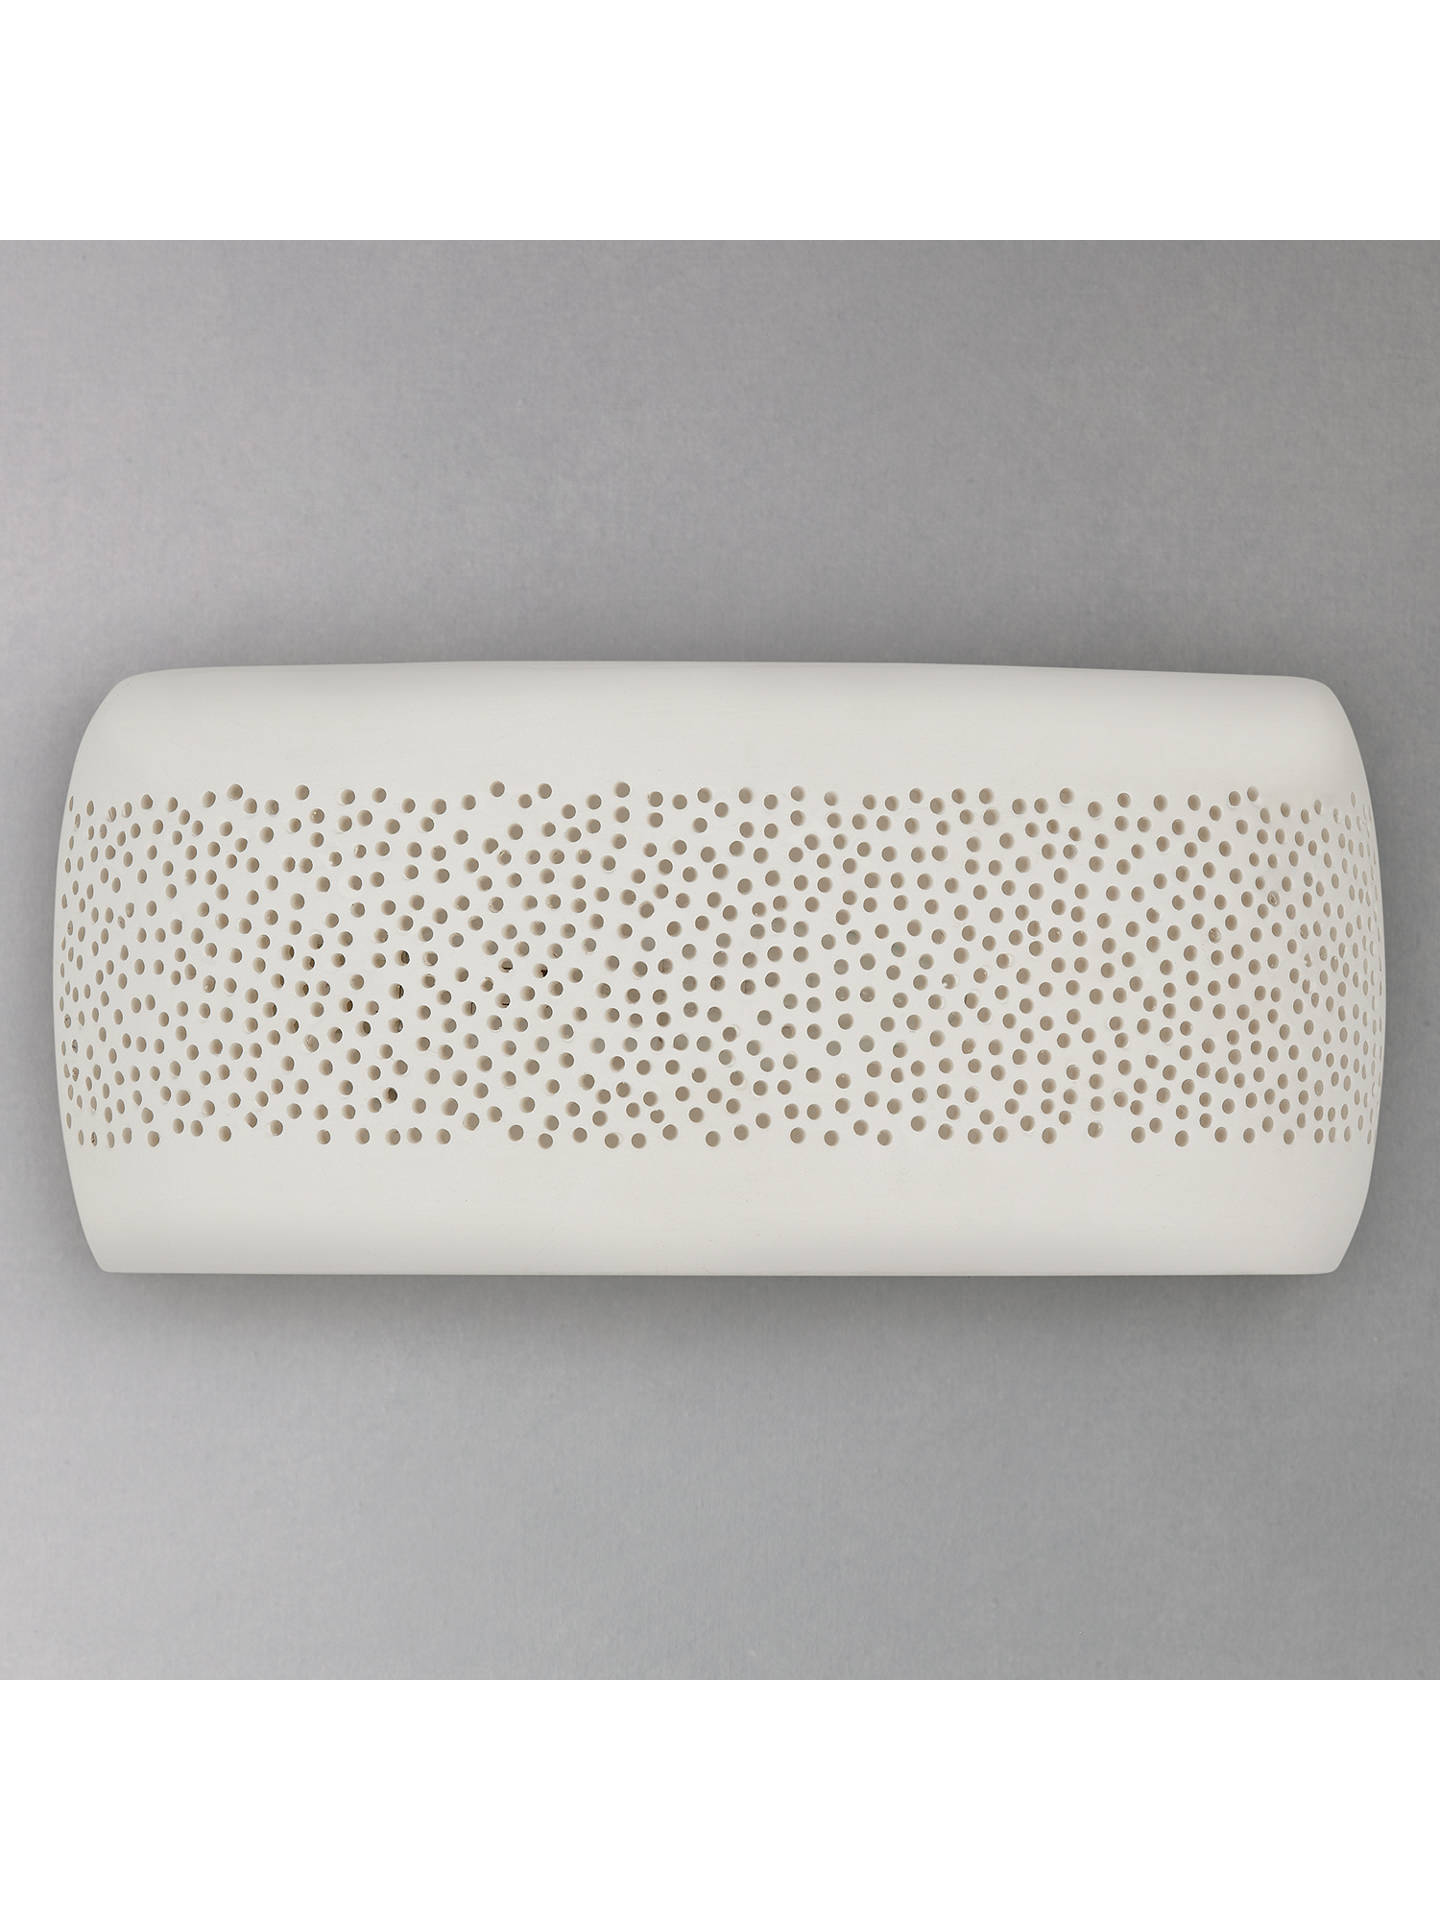 BuyJohn Lewis & Partners Flynn Wall Light Online at johnlewis.com